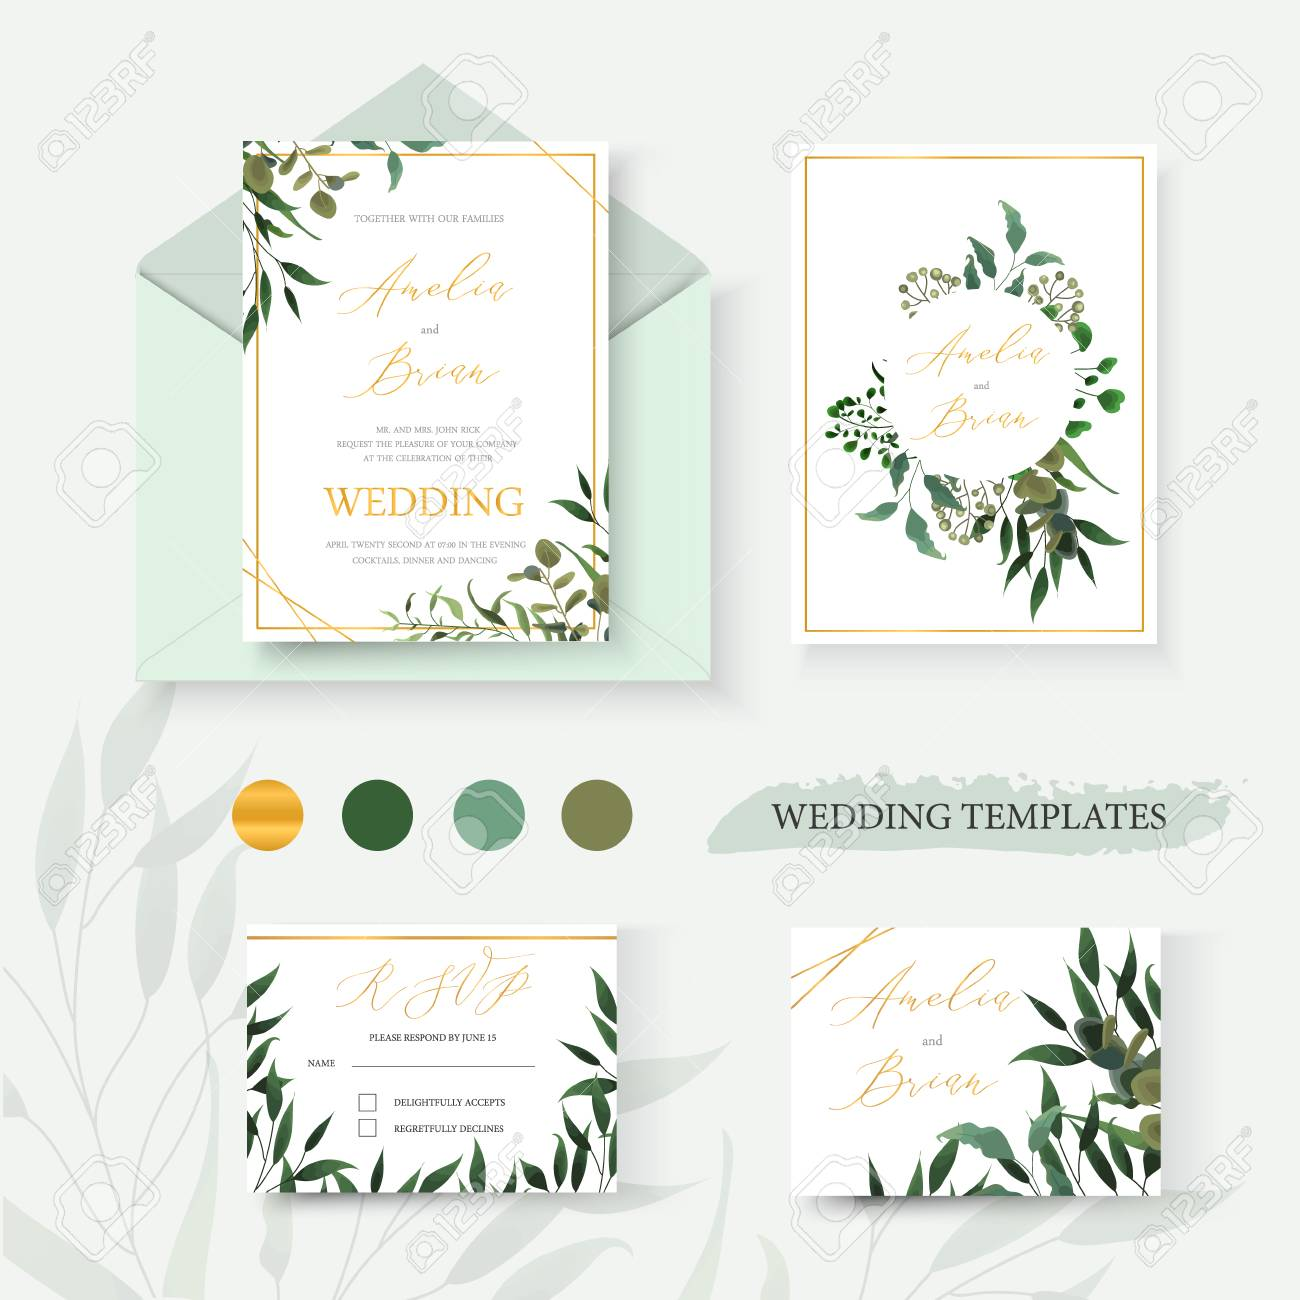 Wedding floral gold invitation card envelope save the date rsvp design with green tropical leaf herbs eucalyptus wreath and frame. Botanical elegant decorative vector template watercolor style - 110008632